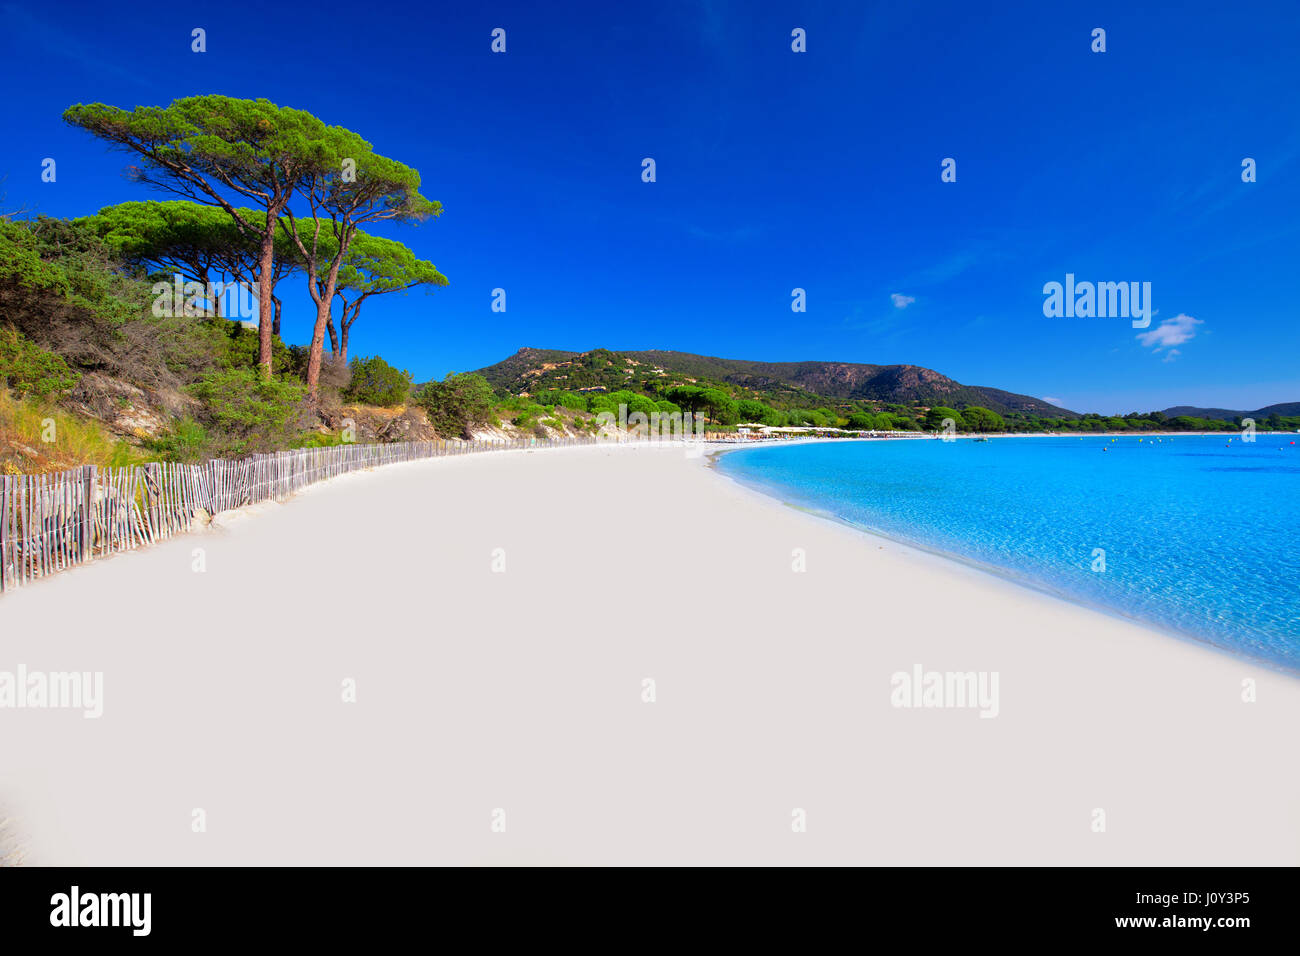 palombaggia-sandy-beach-with-pine-trees-and-azure-clear-water-corsica-J0Y3P5.jpg